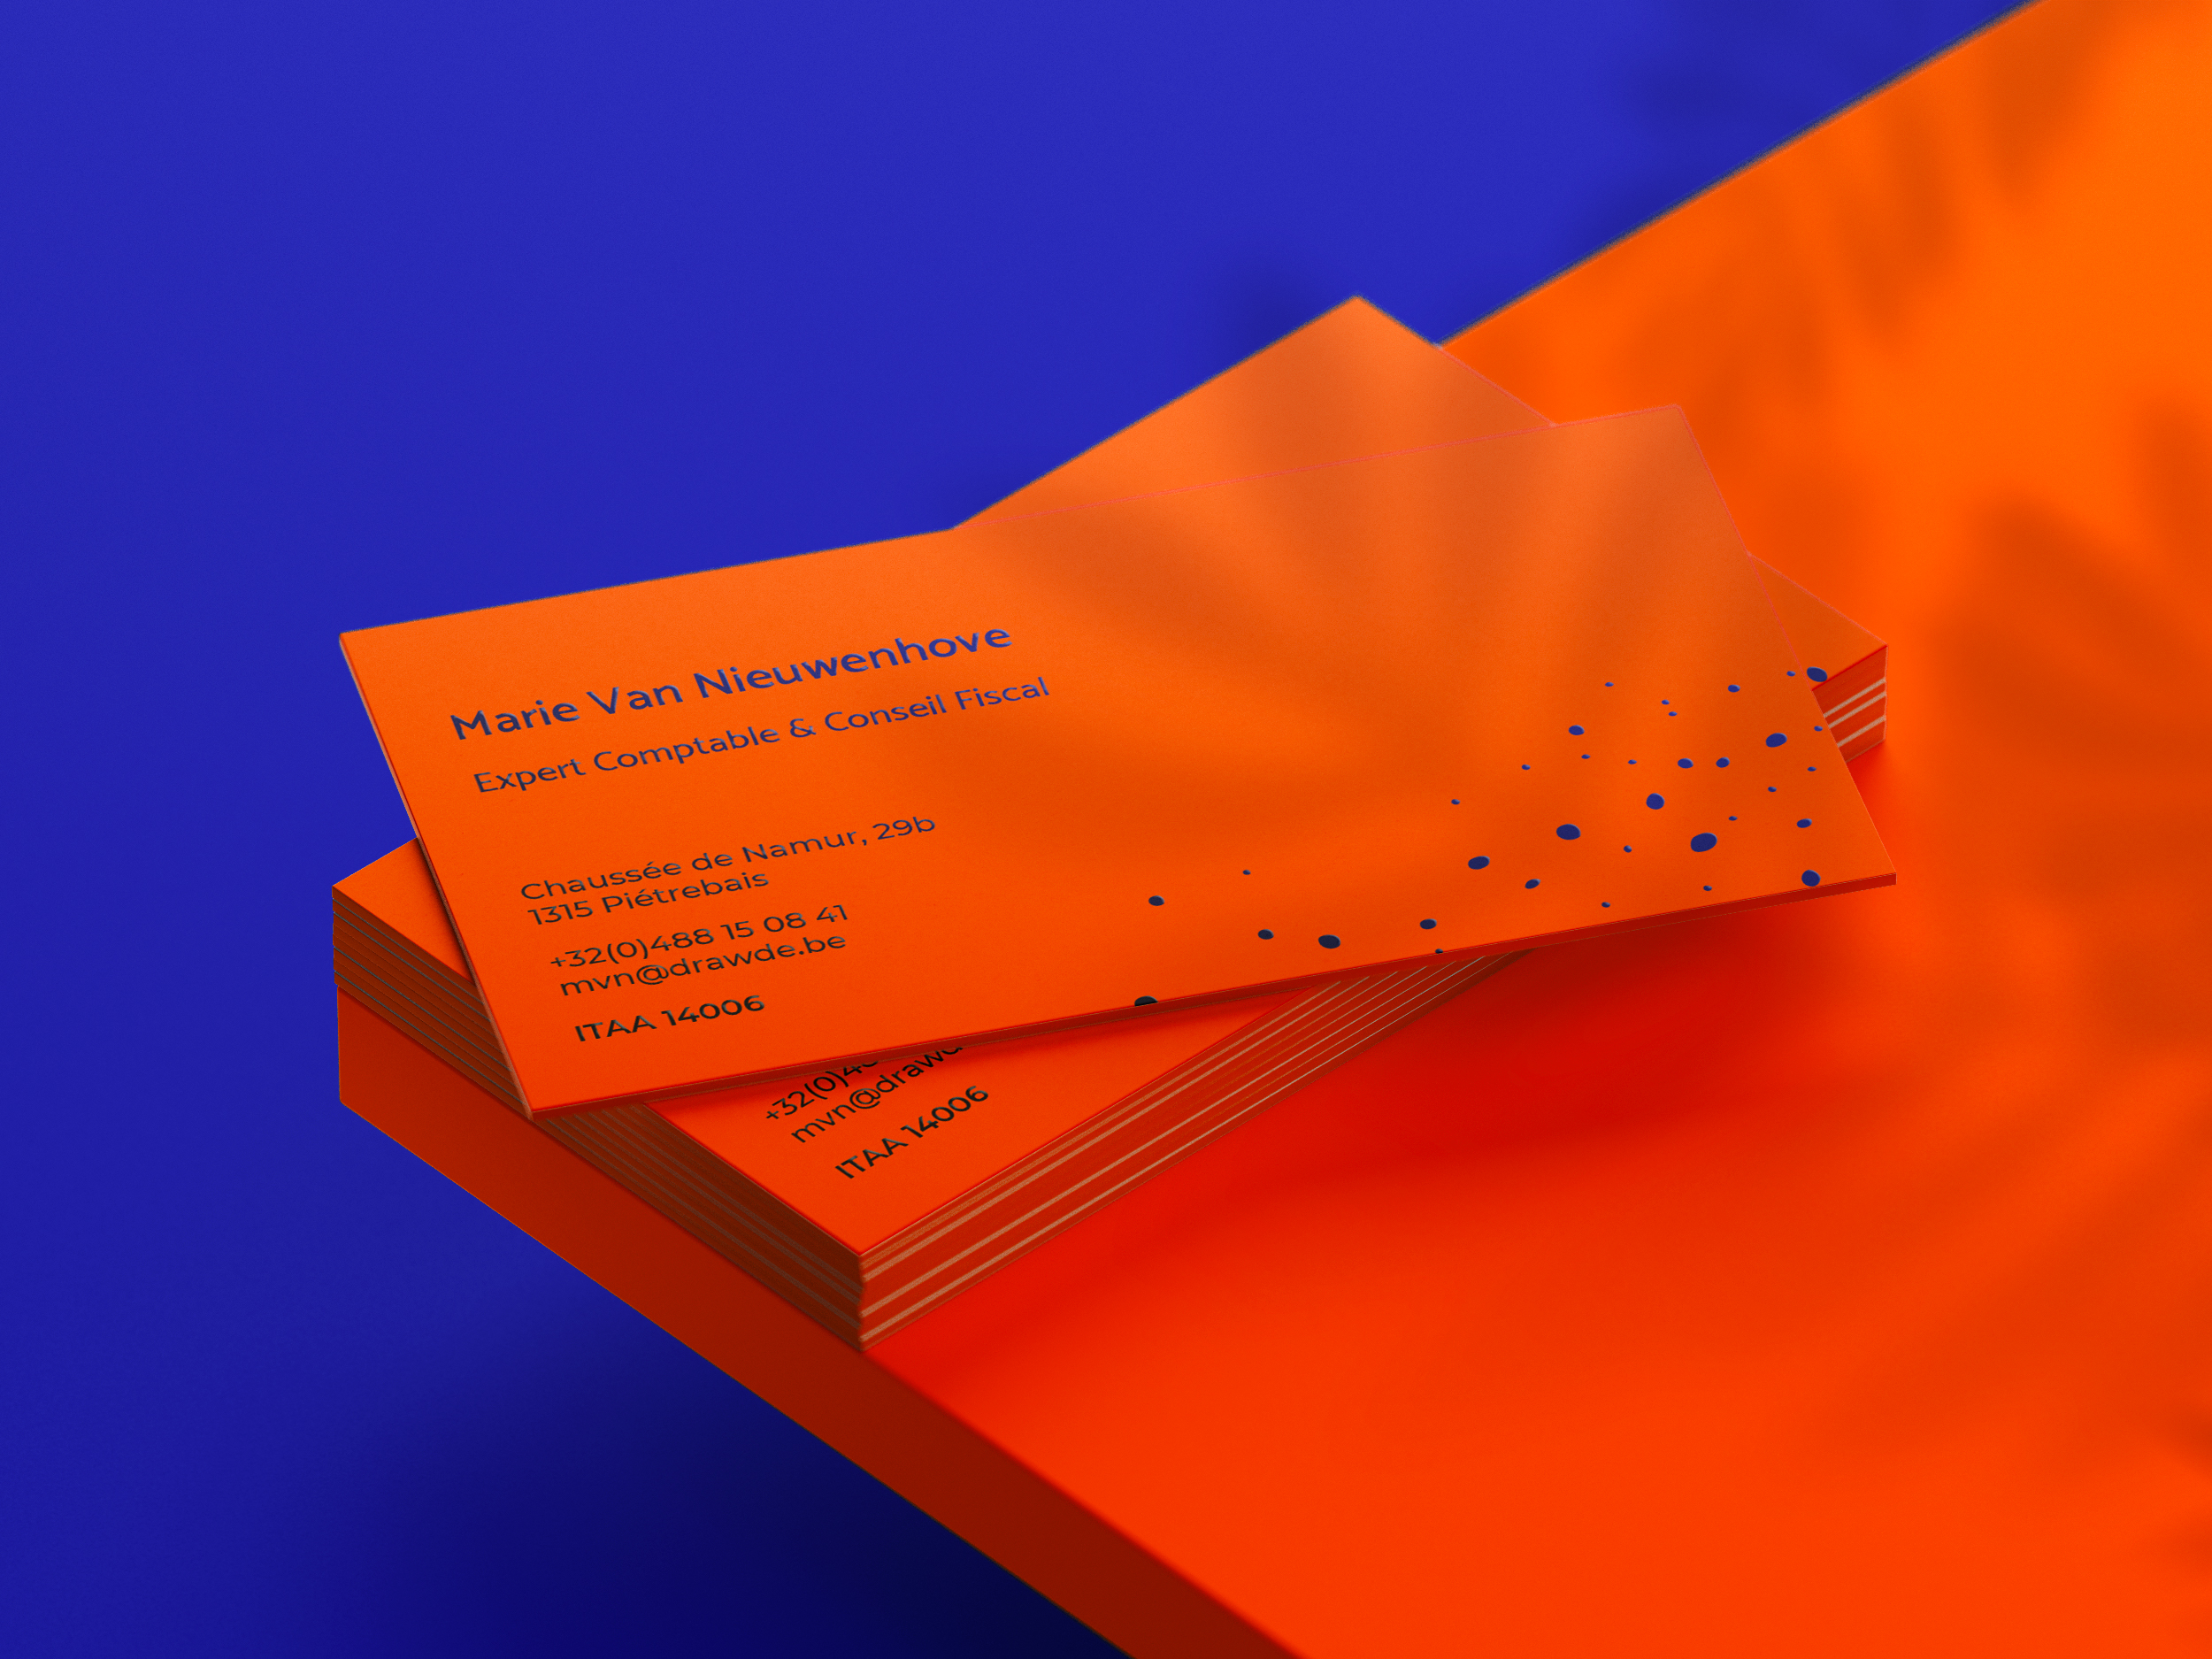 Drawde business cards, back view.